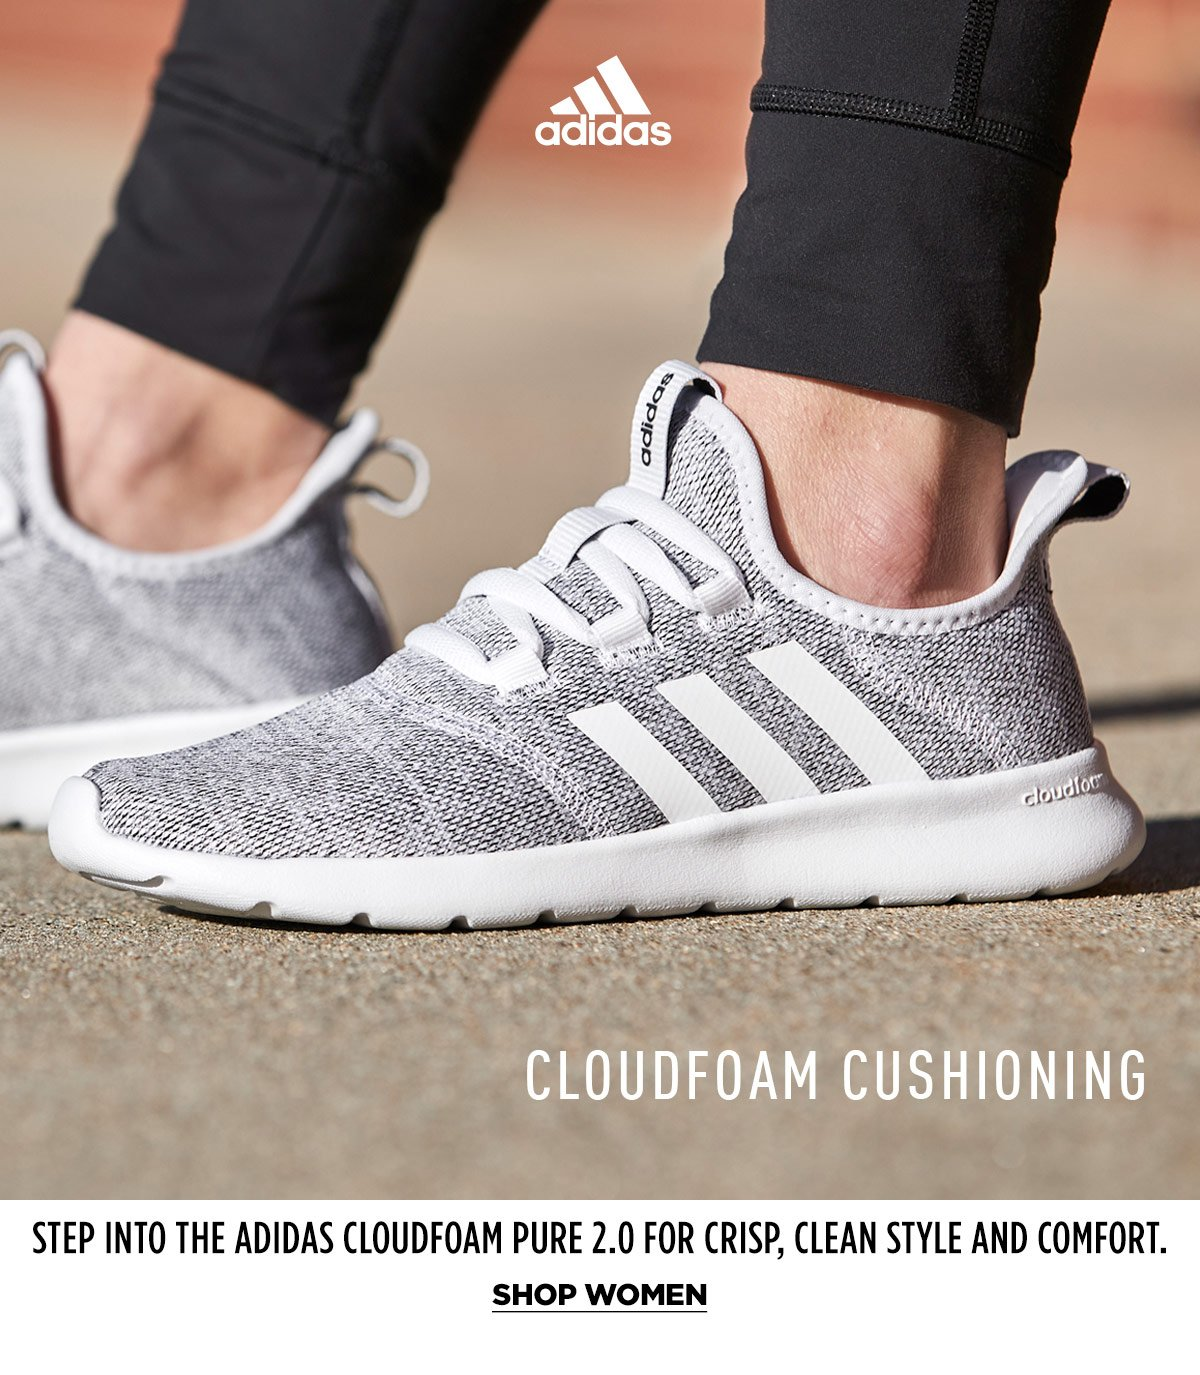 Rack Room Shoes: Step into the adidas Cloudfoam Pure 2.0 | Milled